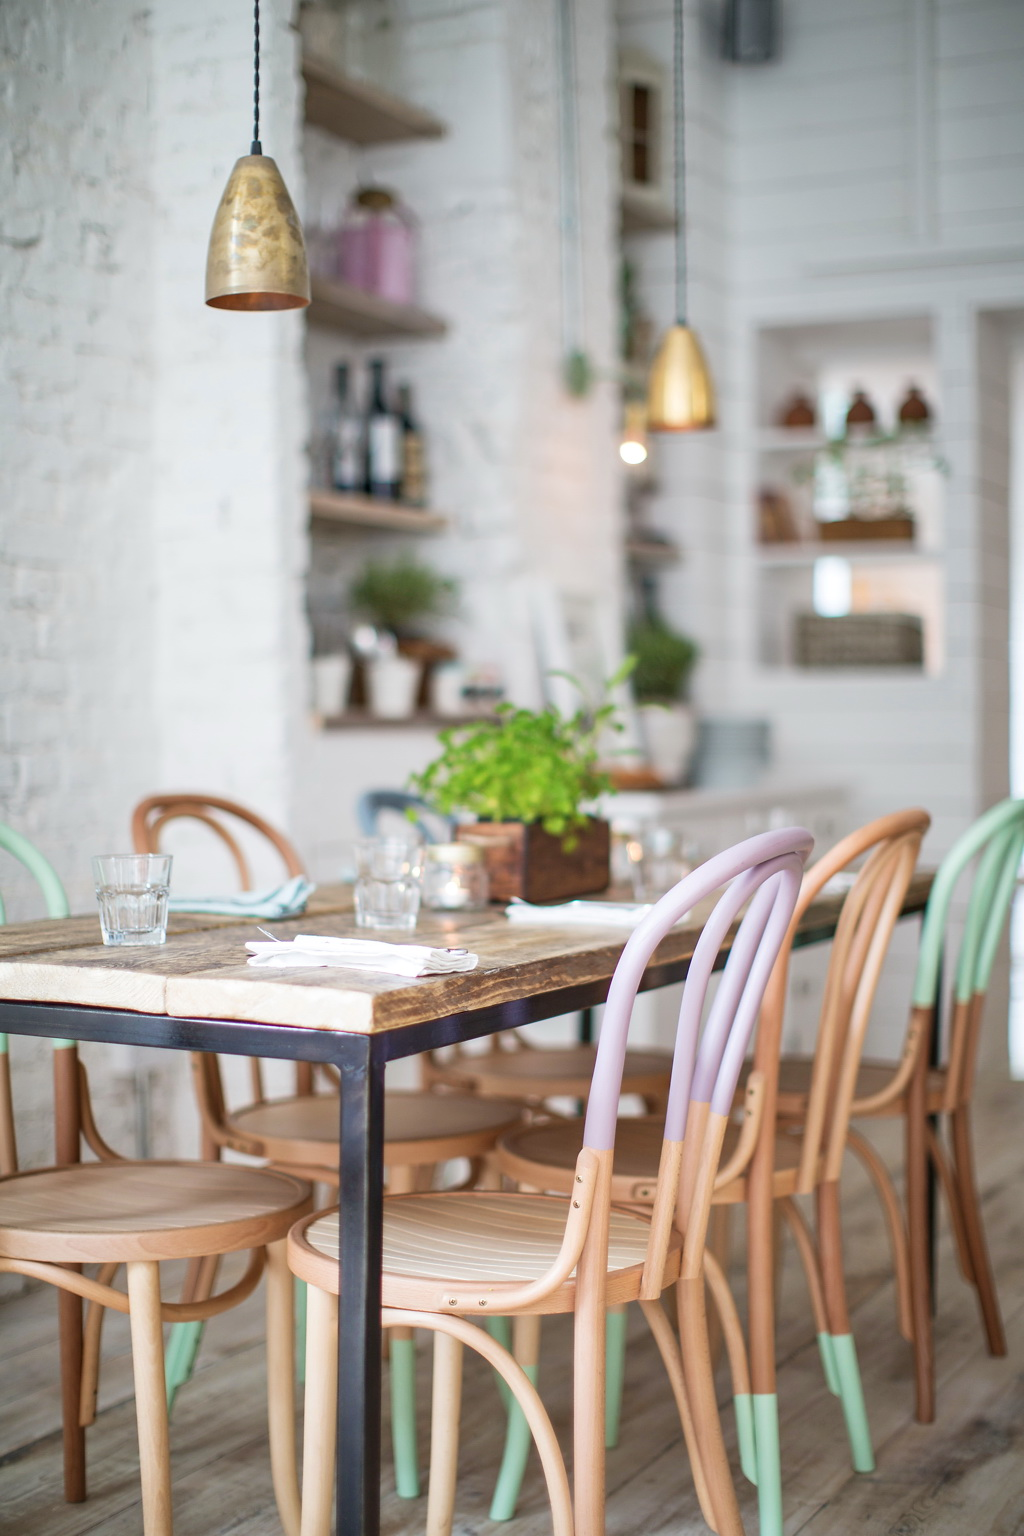 Jelanie blog - Hally's - a Californian inspired hangout in London 2